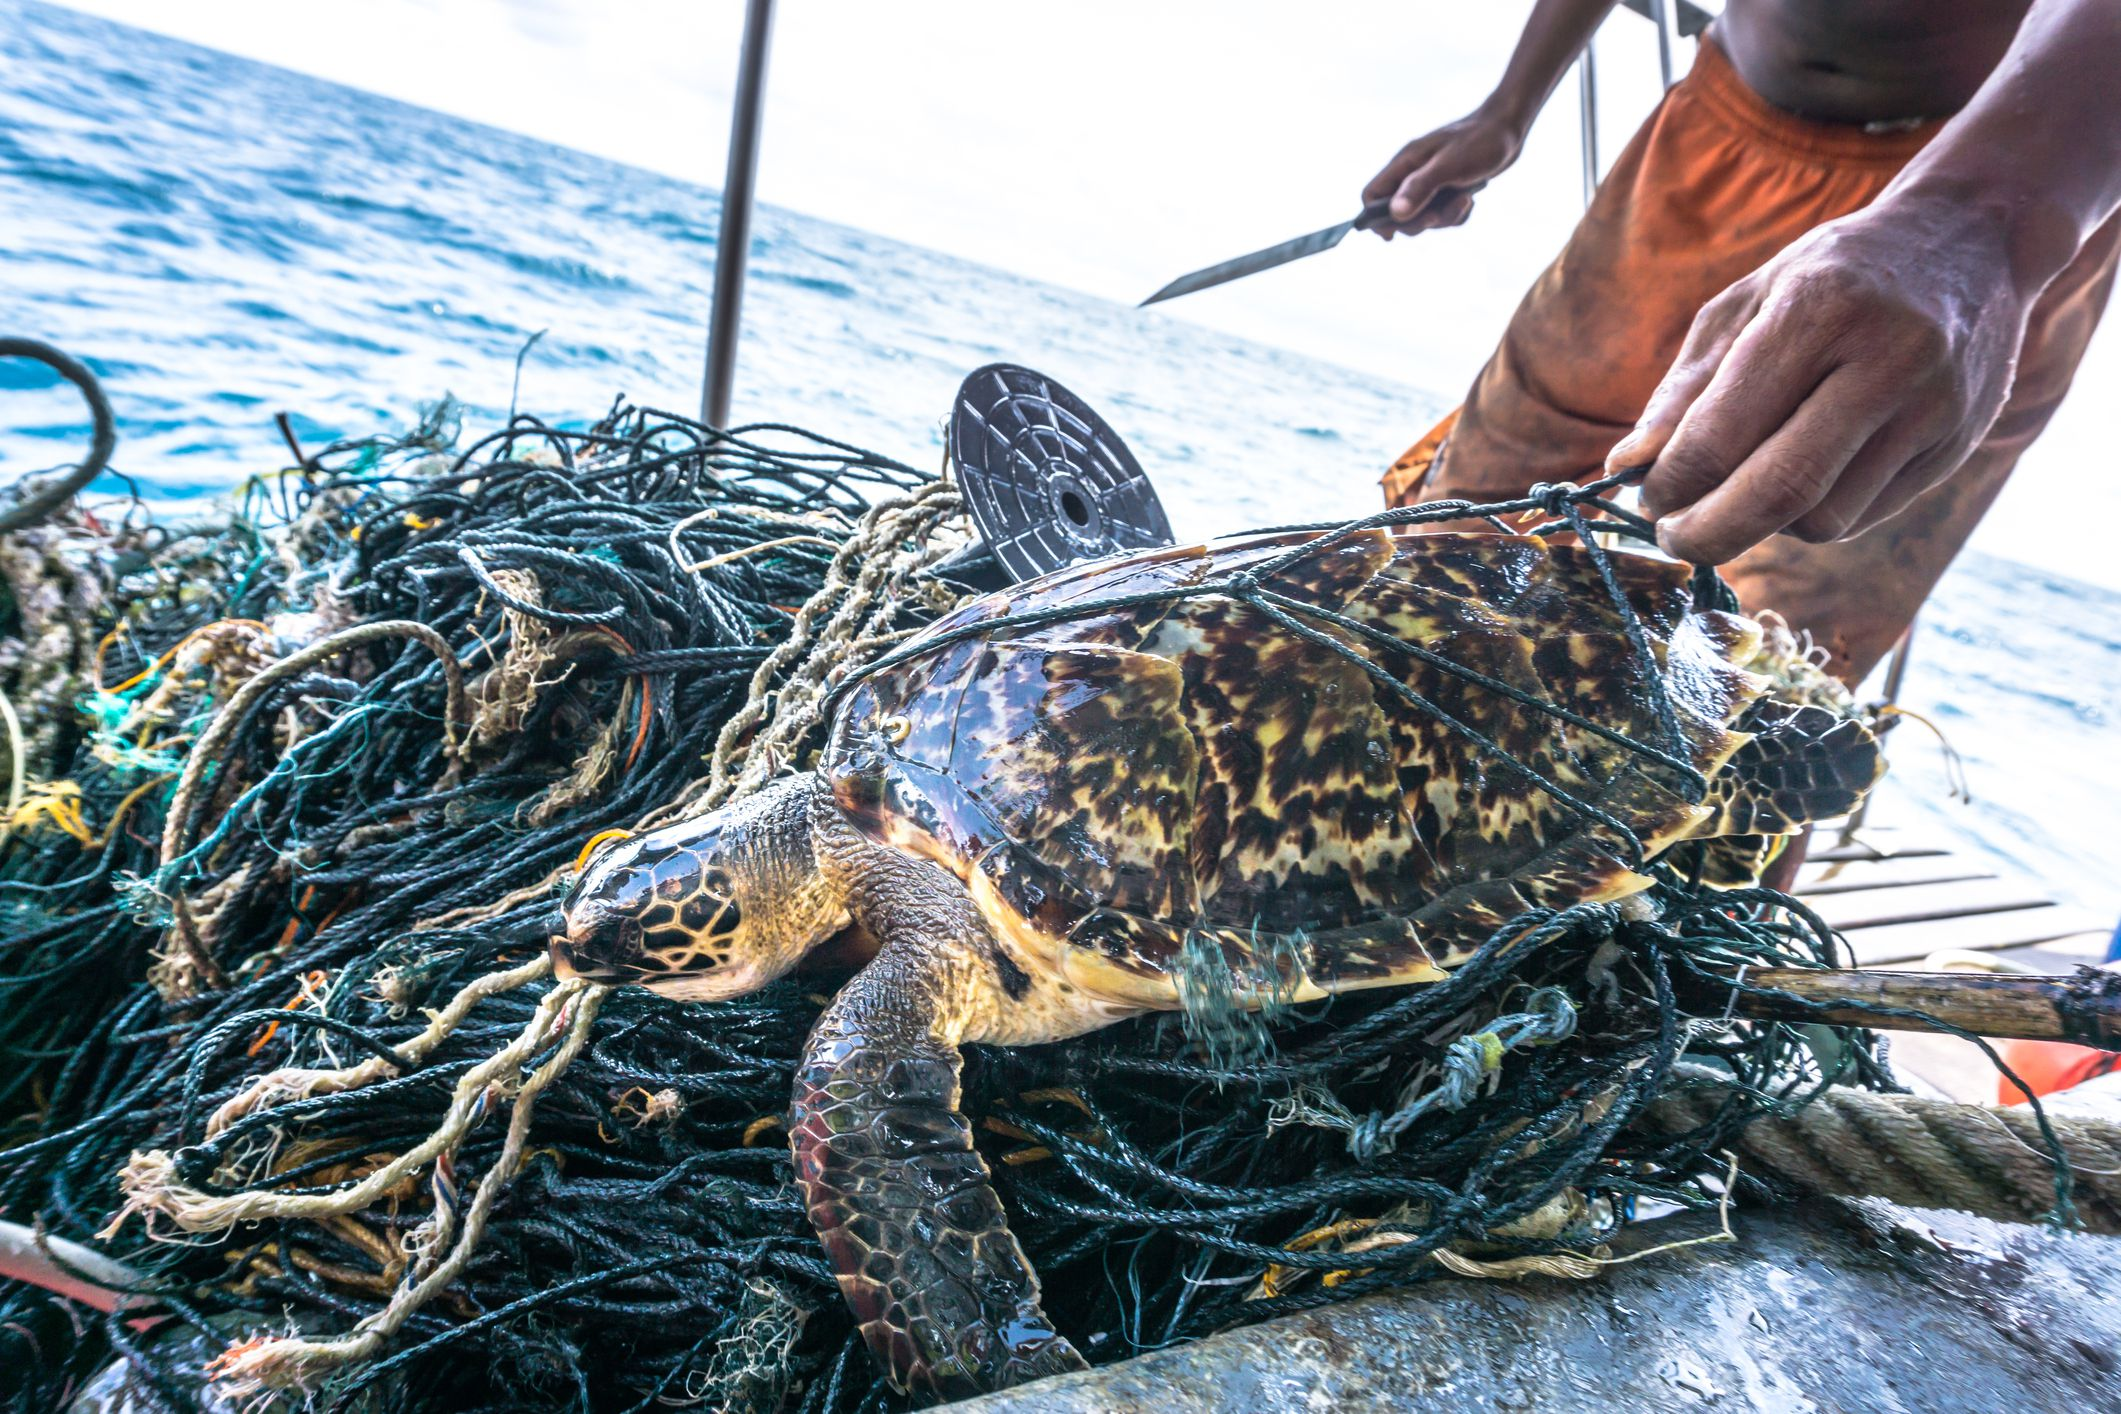 Man with knife rescuing Critically Endangered Hawksbill Sea Turtle tangled Ghost Net